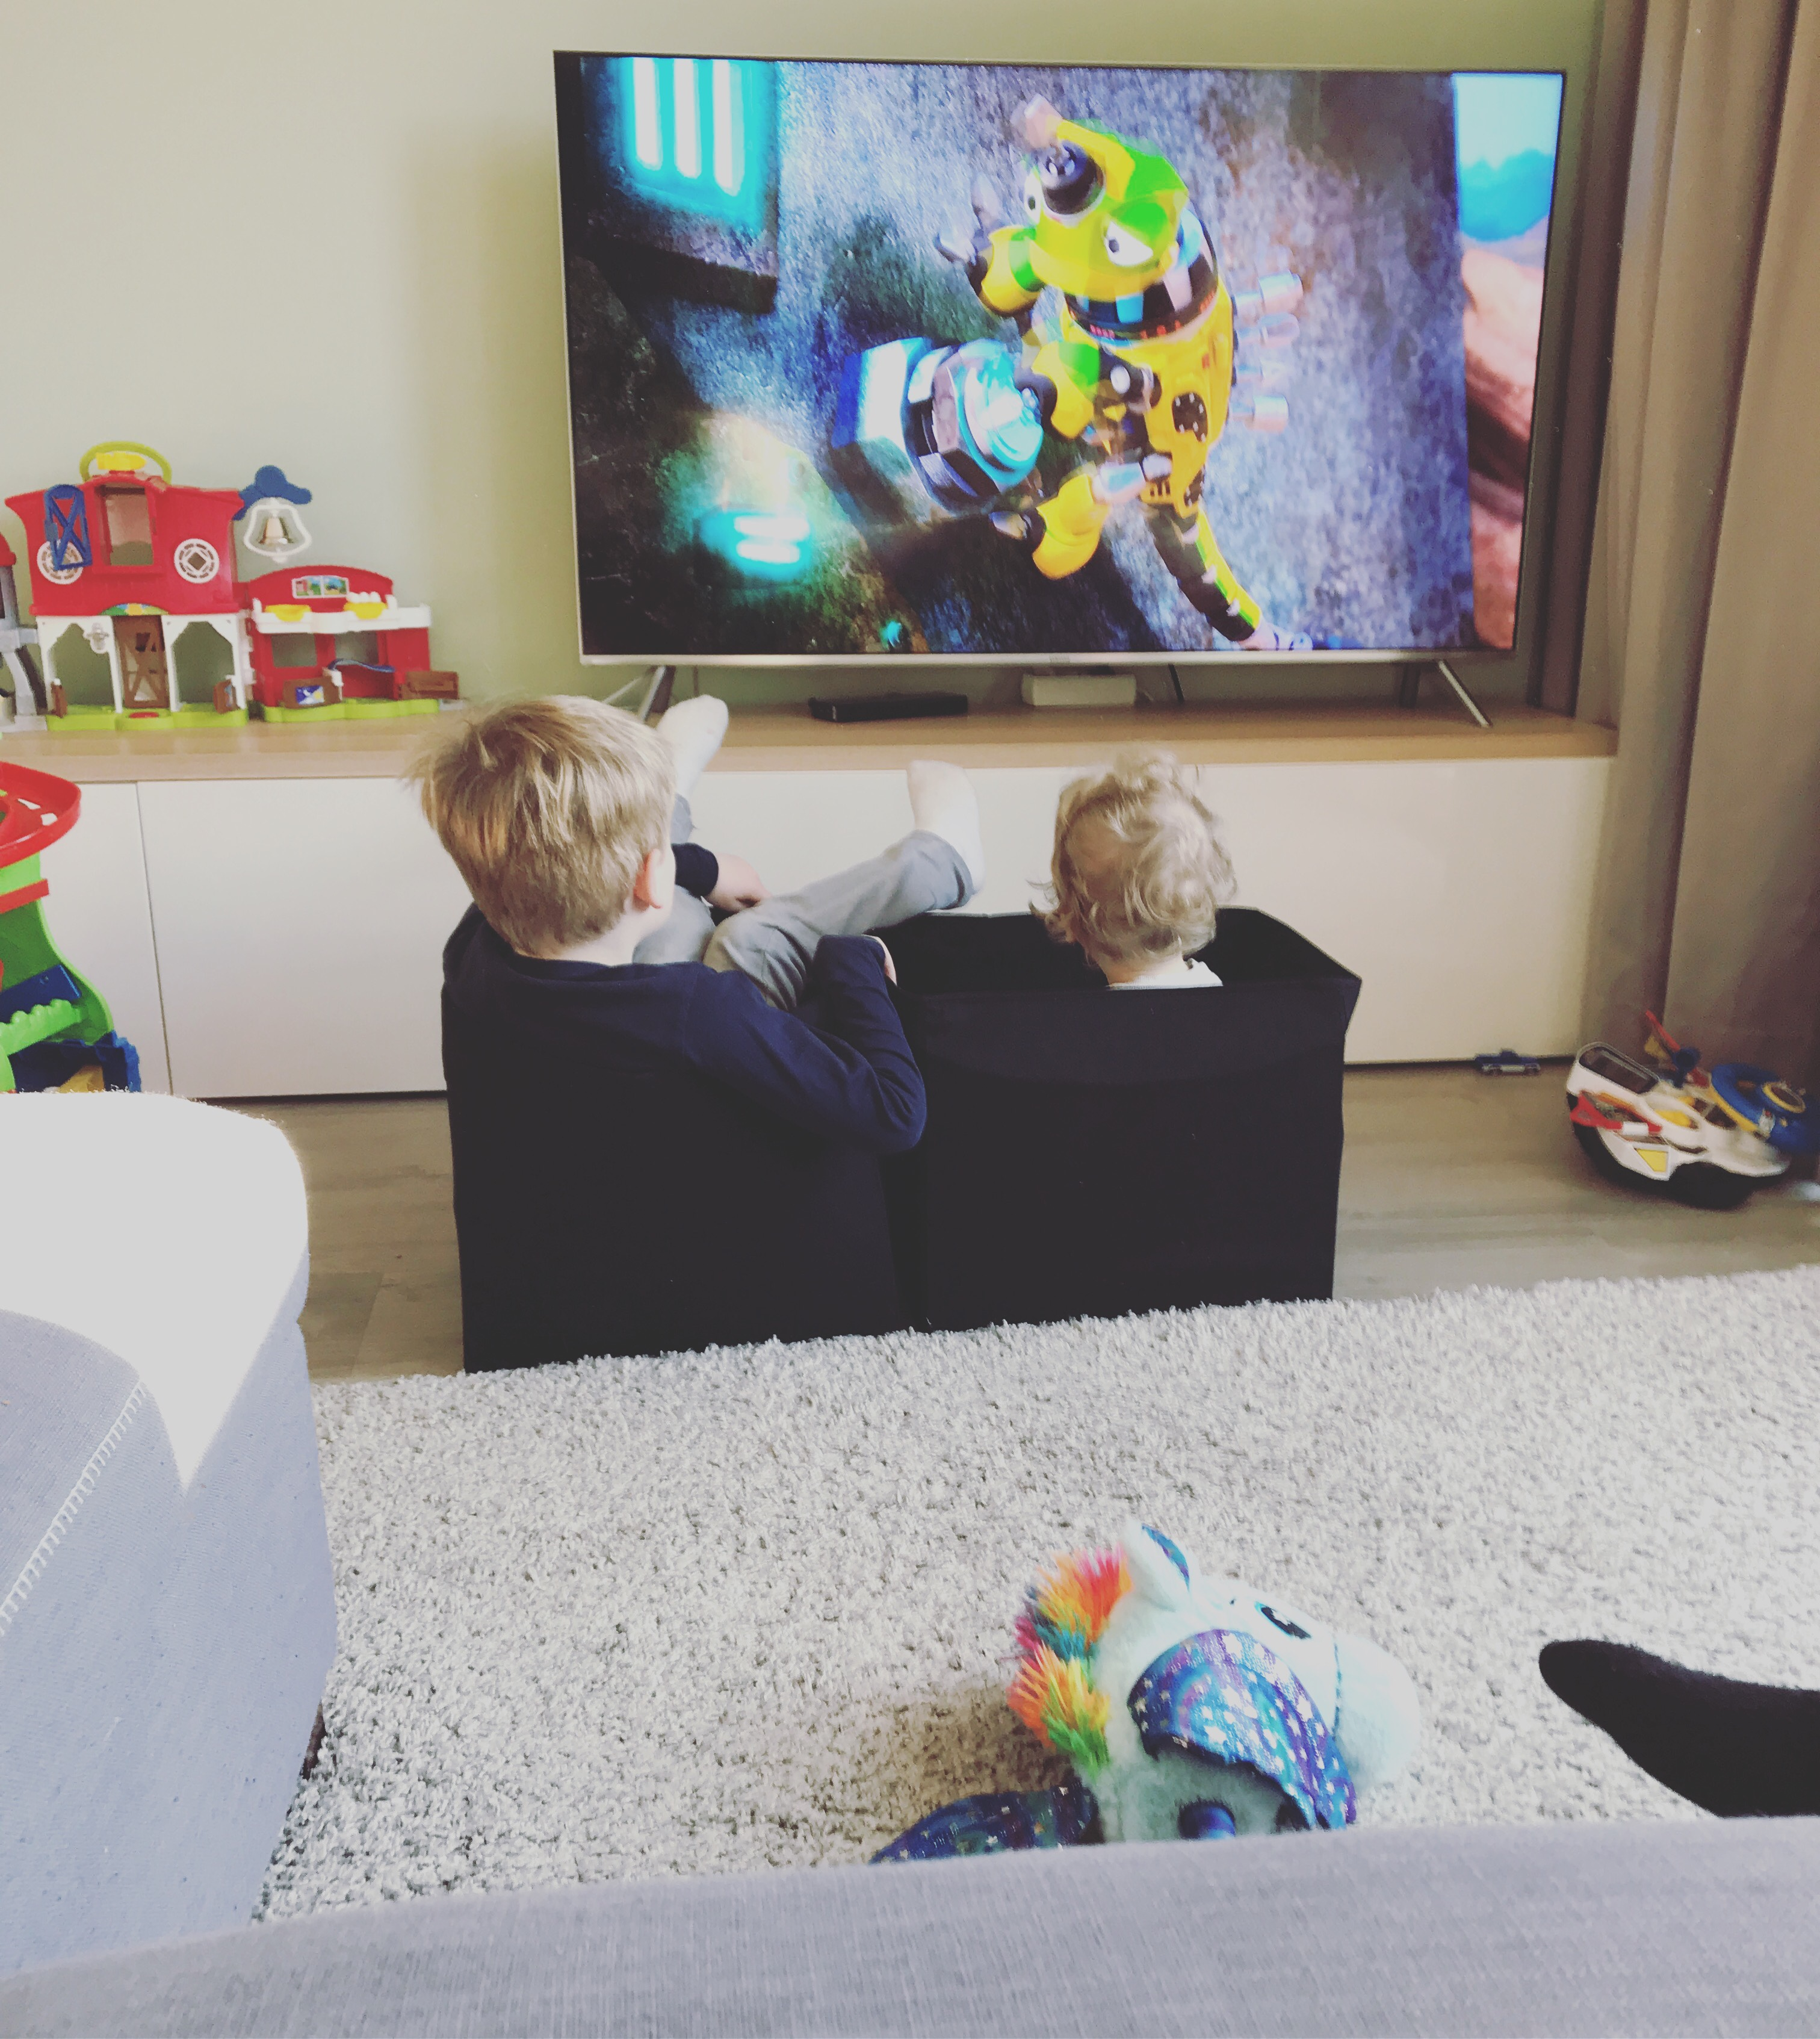 photodiary foto fotos photo photos persoonlijk leven mama mamablog blog blogger mamablogger lifestyle laviedemama.nl